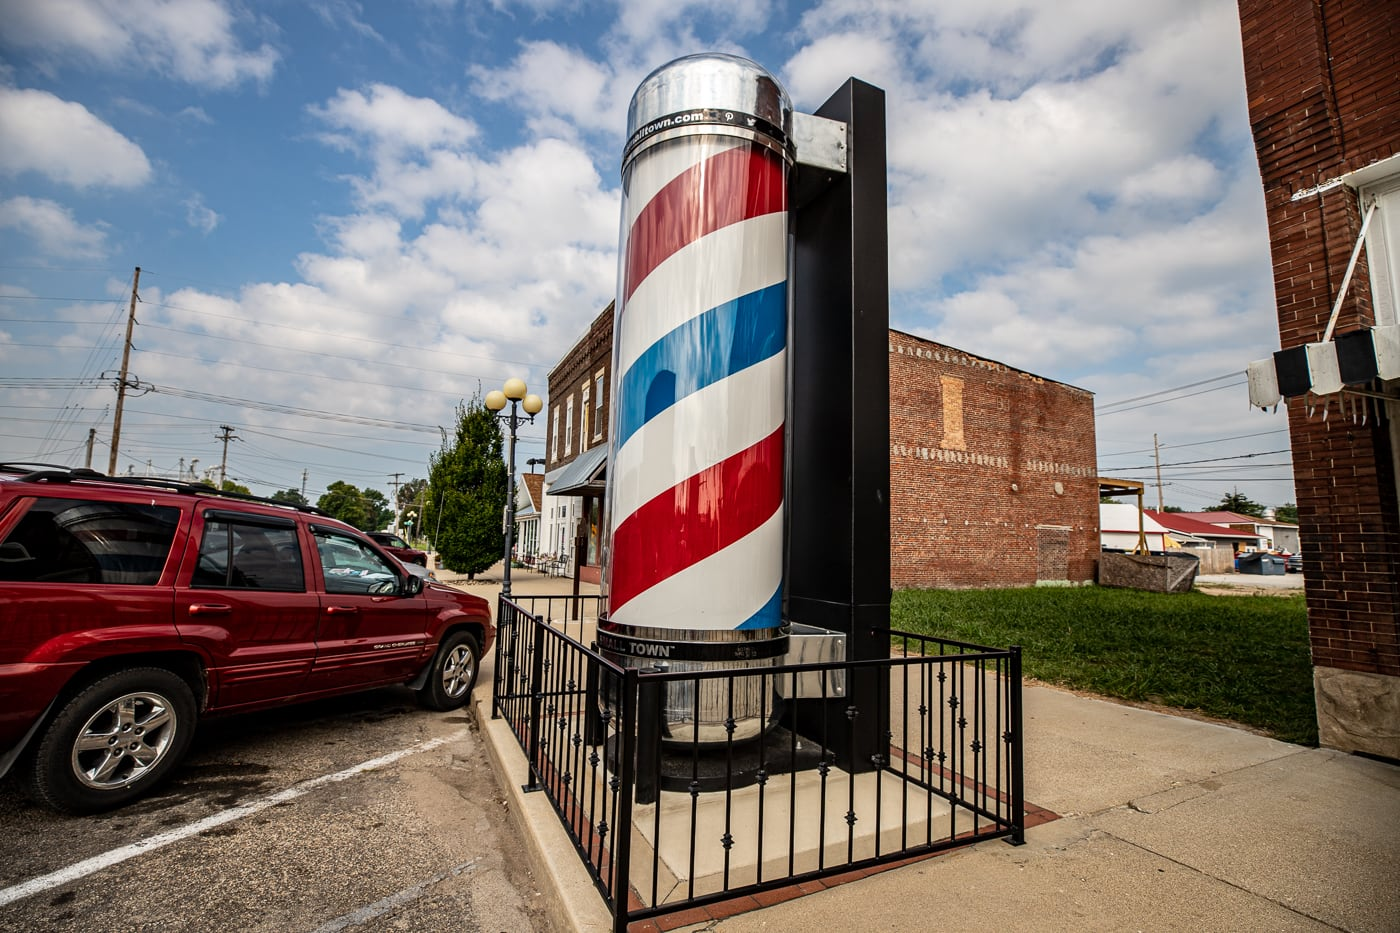 World's Largest Barbershop Pole in Casey, Illinois roadside attraction